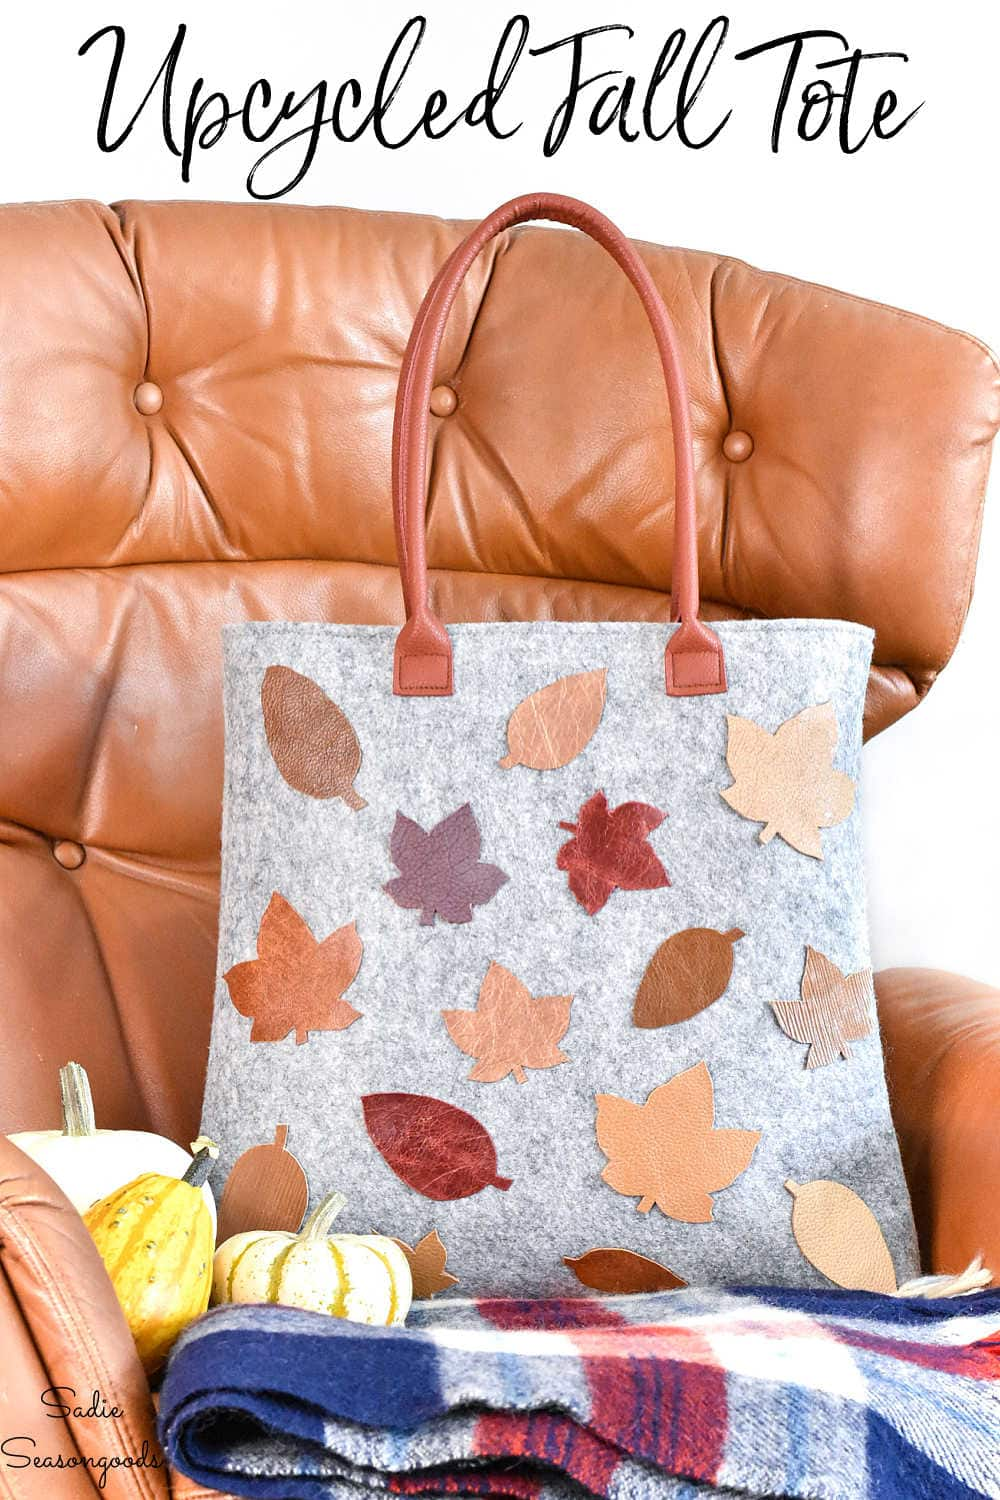 decorating a wool tote with fall leaves